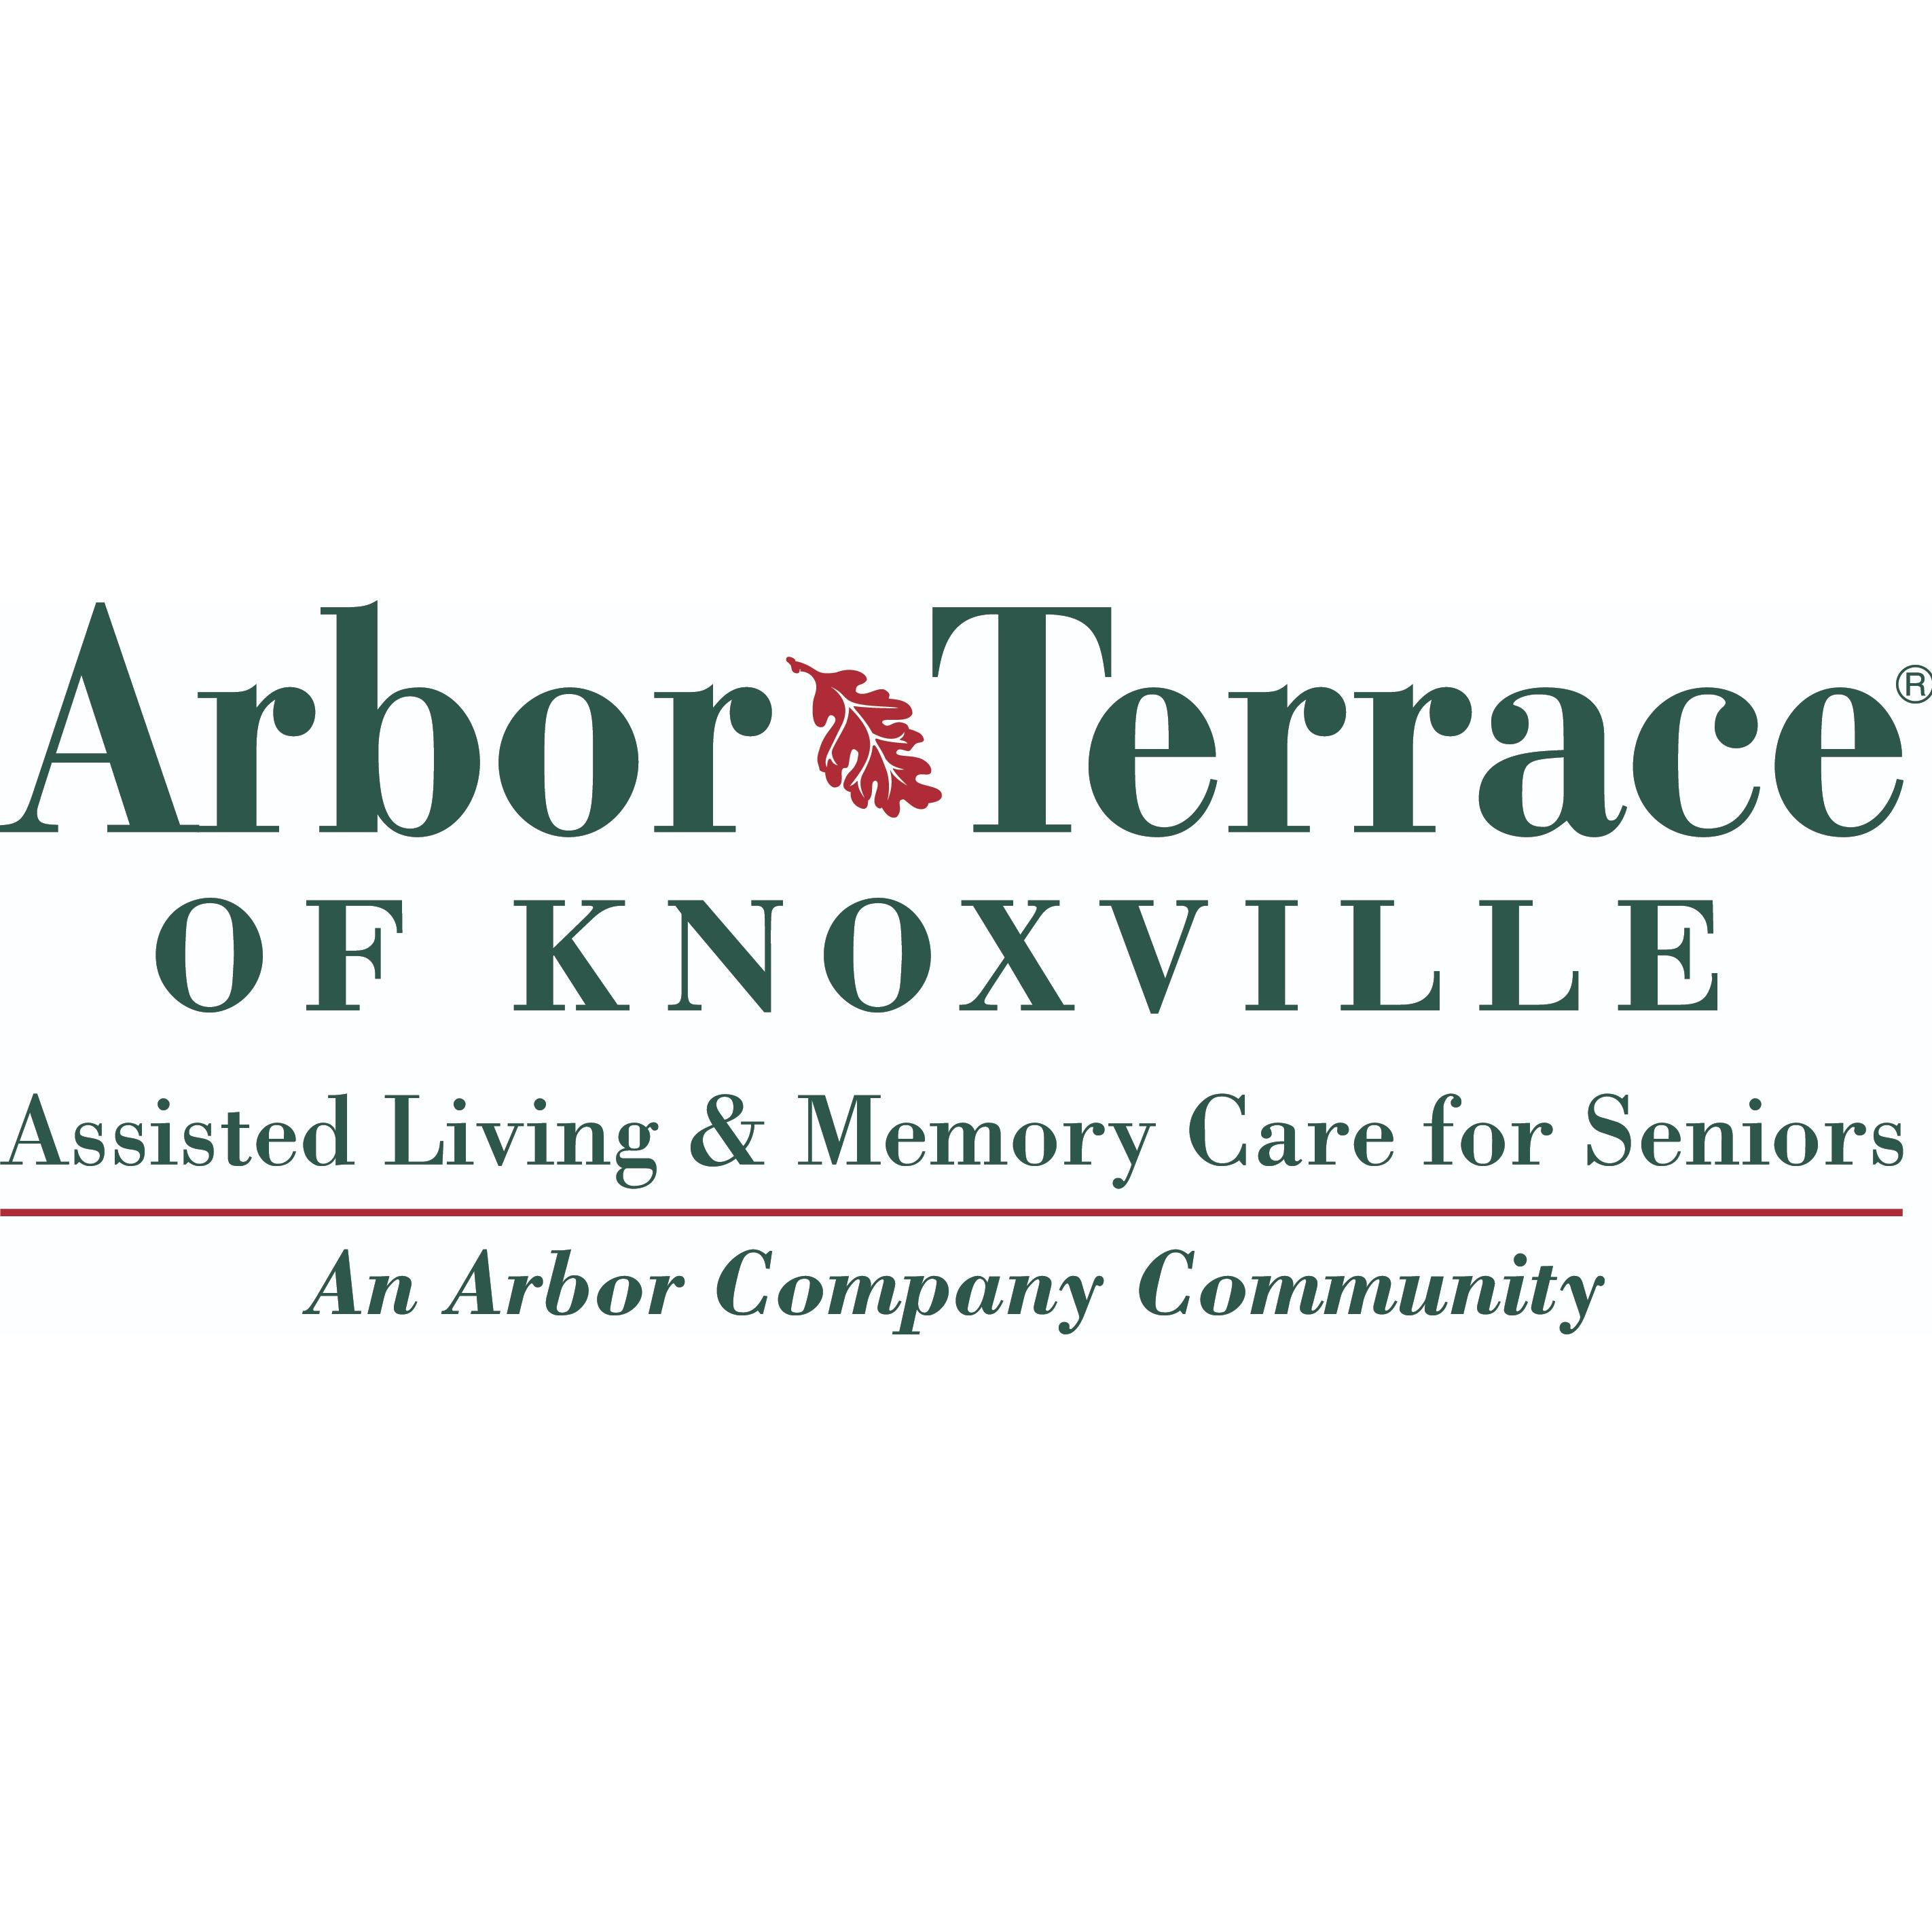 Arbor Terrace of Knoxville